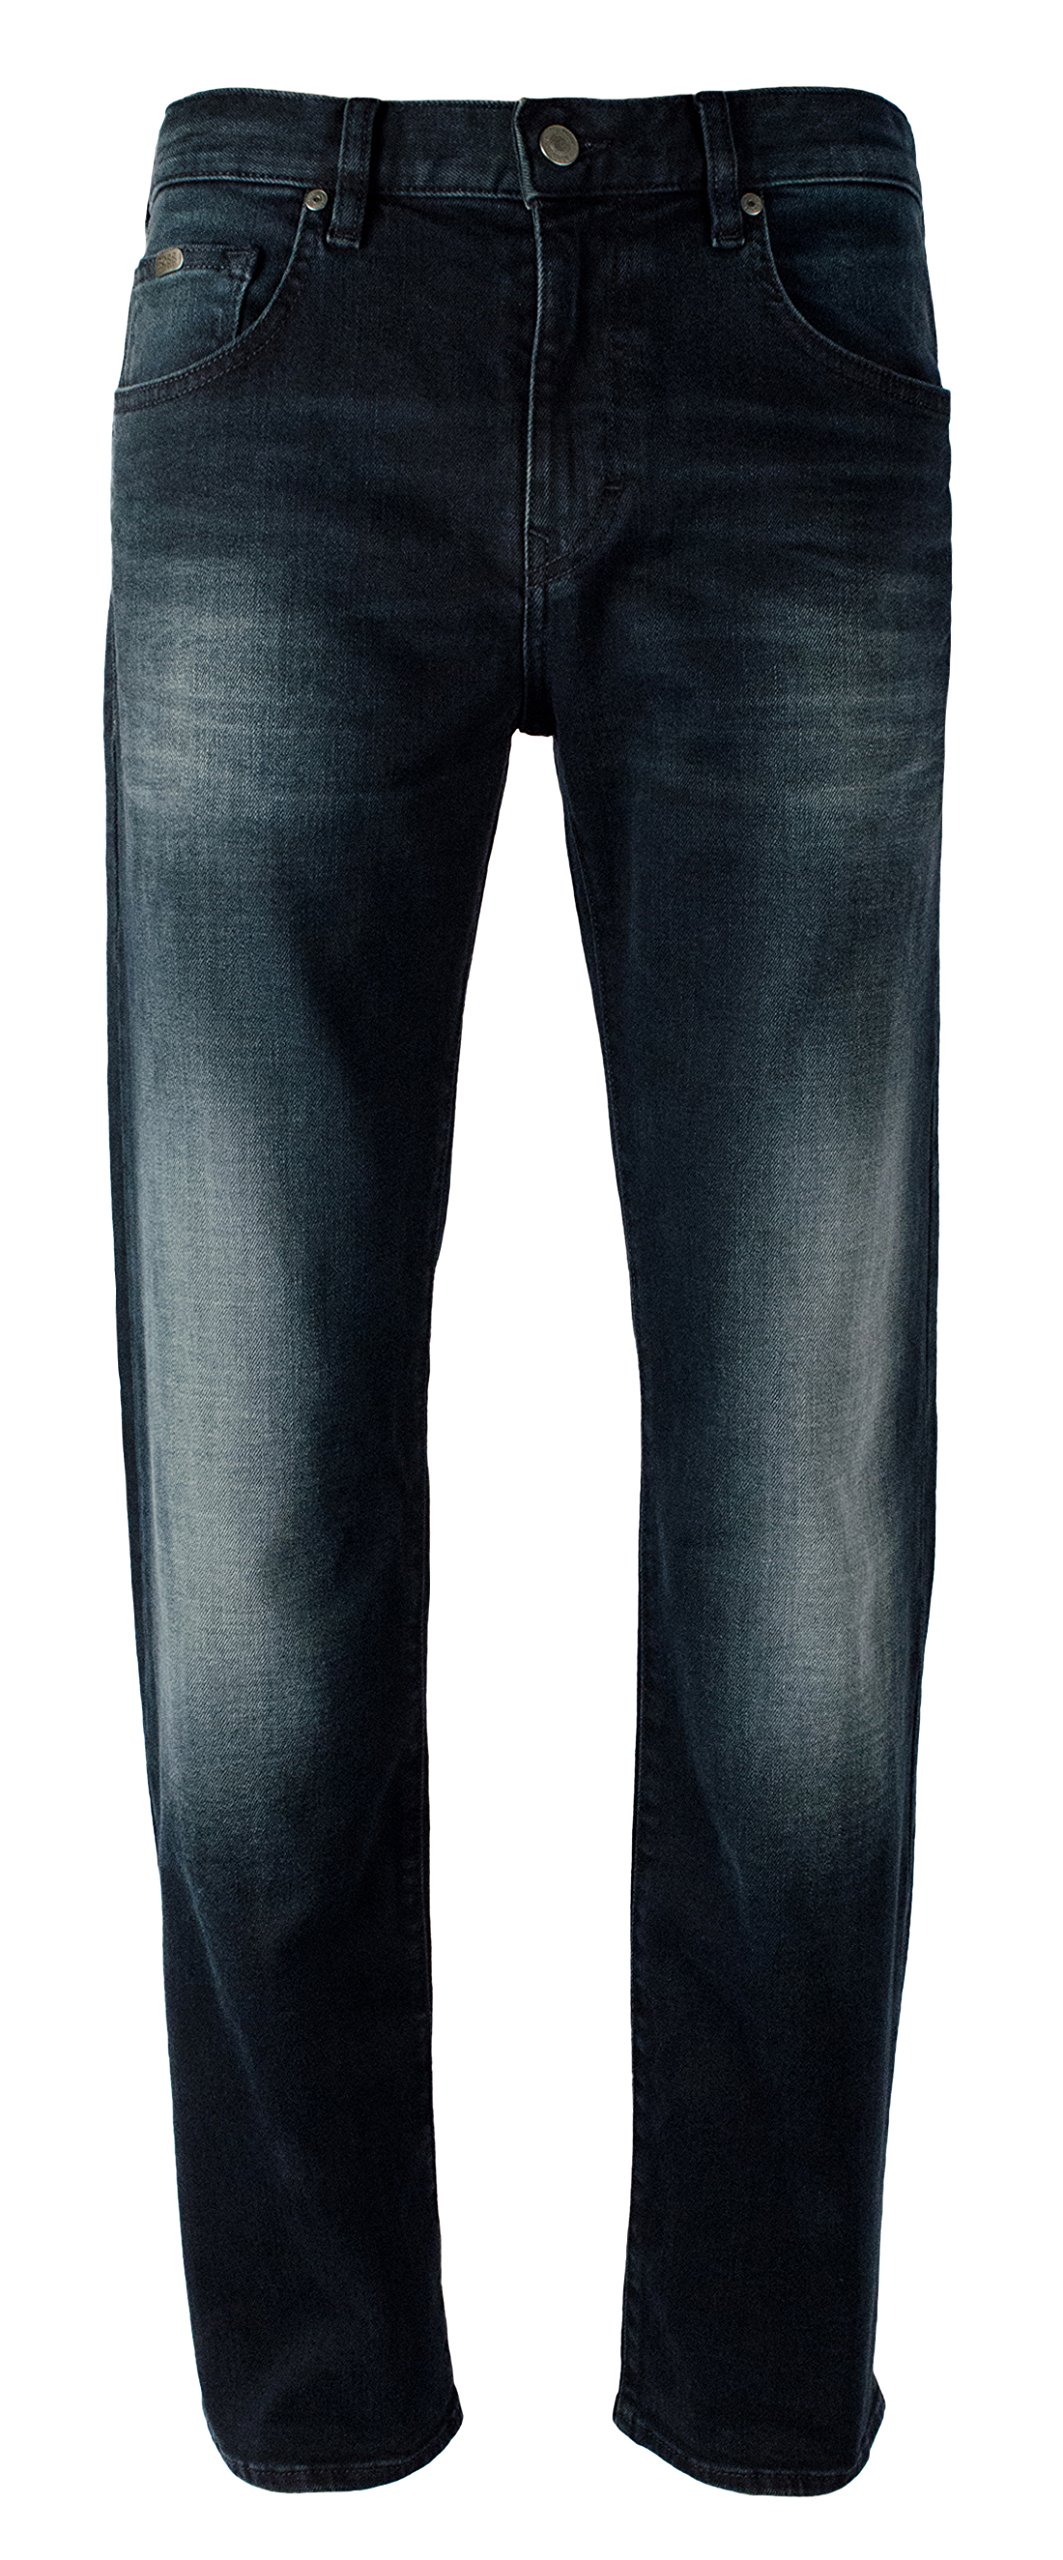 Hugo Boss Men's Kansas Relaxed Fit Green Label Stretch Jeans-B-34Wx30L by HUGO BOSS